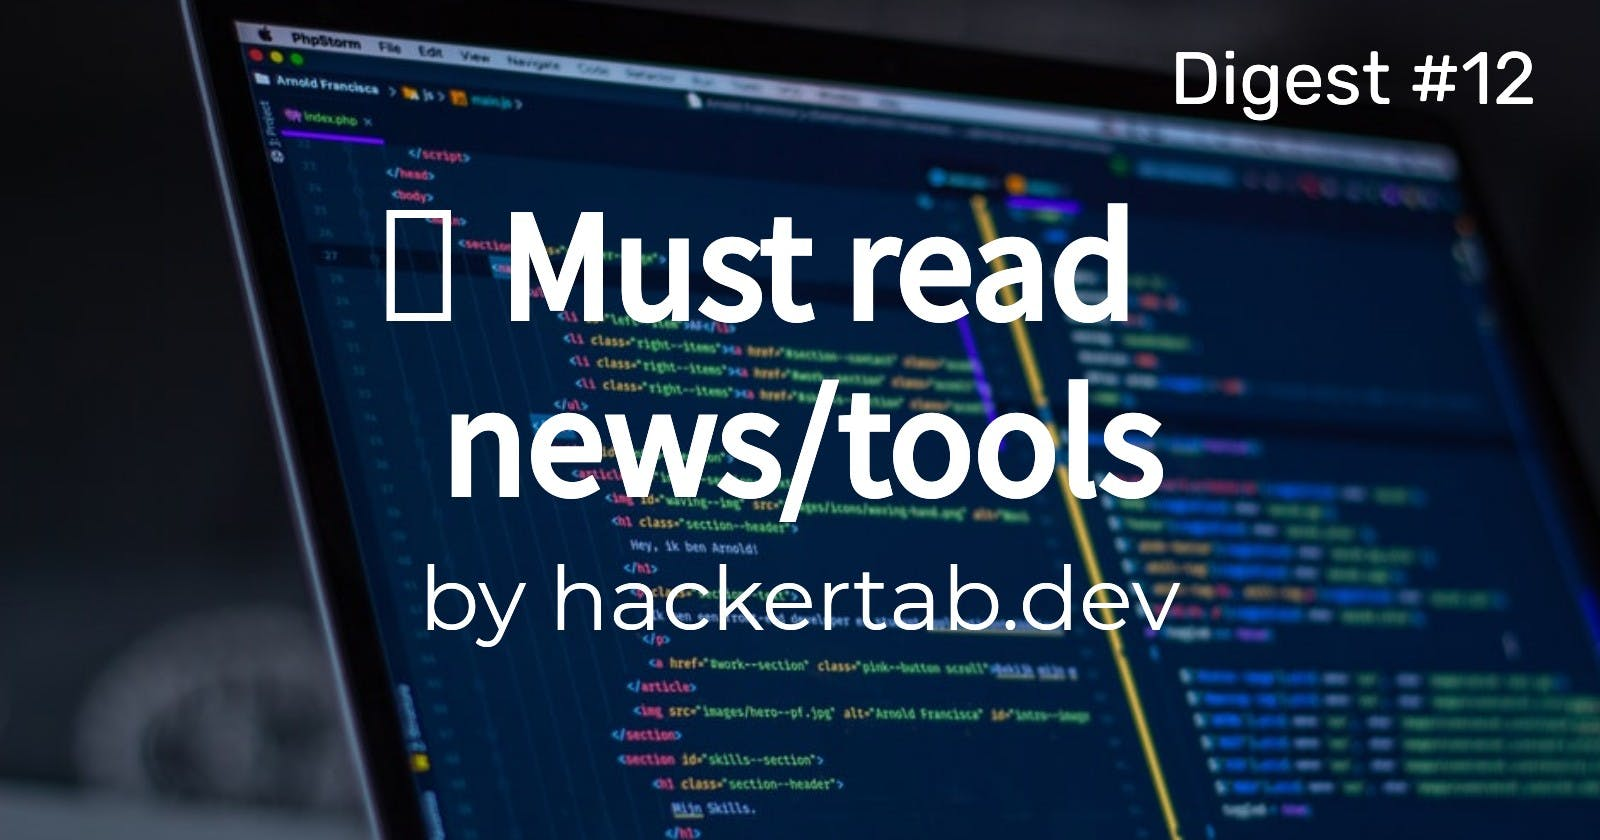 ⚡ Must read Tech news/tools of the day - Digest #12